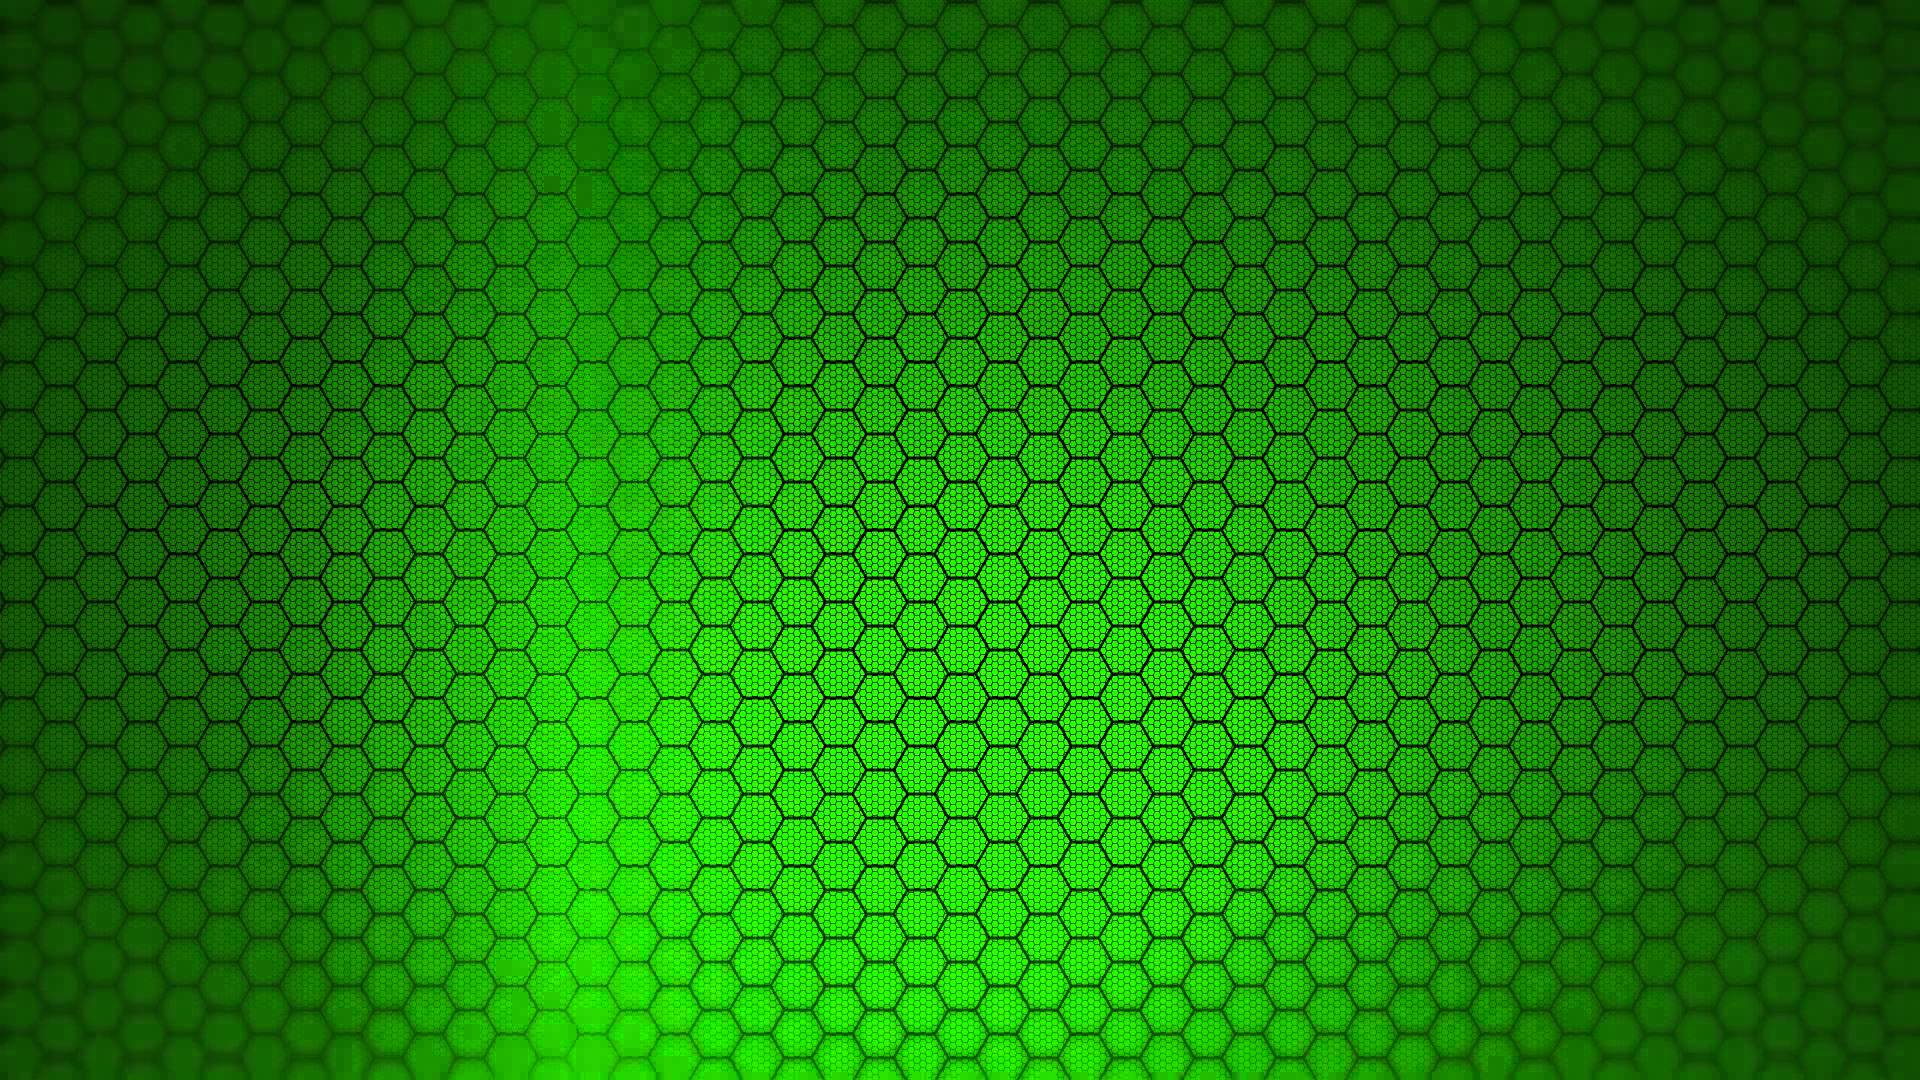 Green Backgrounds, Compatible - PC, Mobile, Gadgets| 1920x1080 px